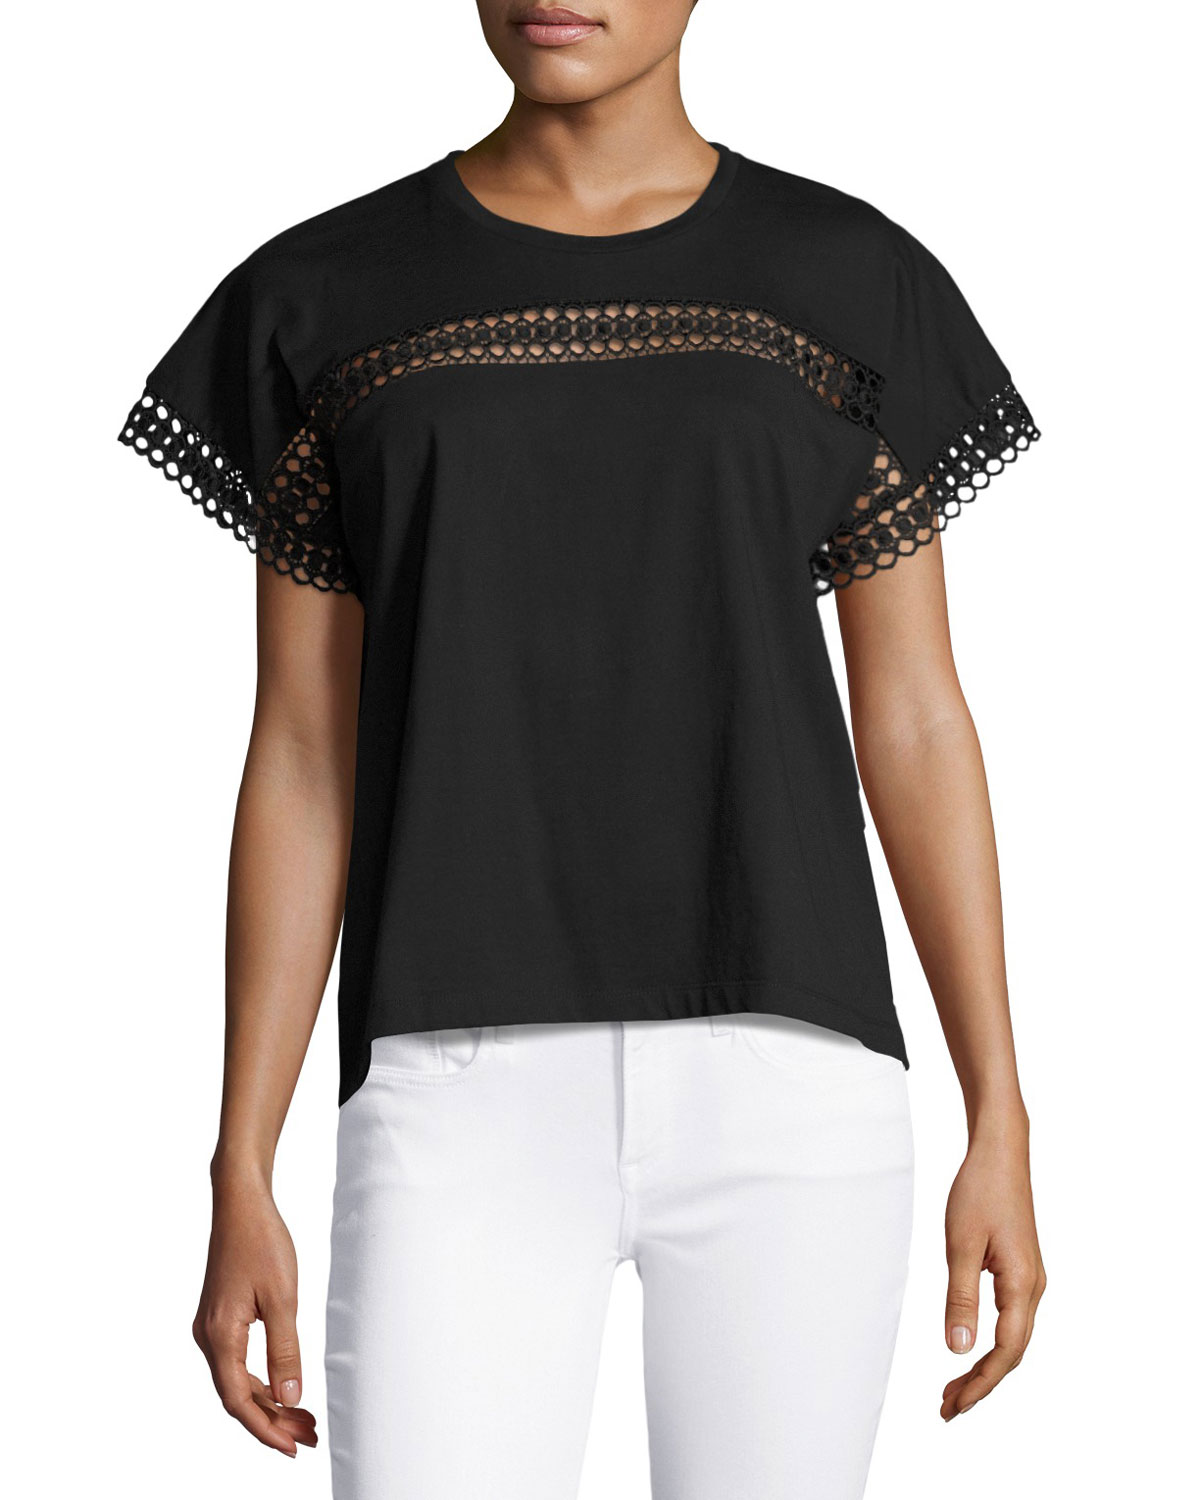 Lace-Insert Cotton Tee, Black